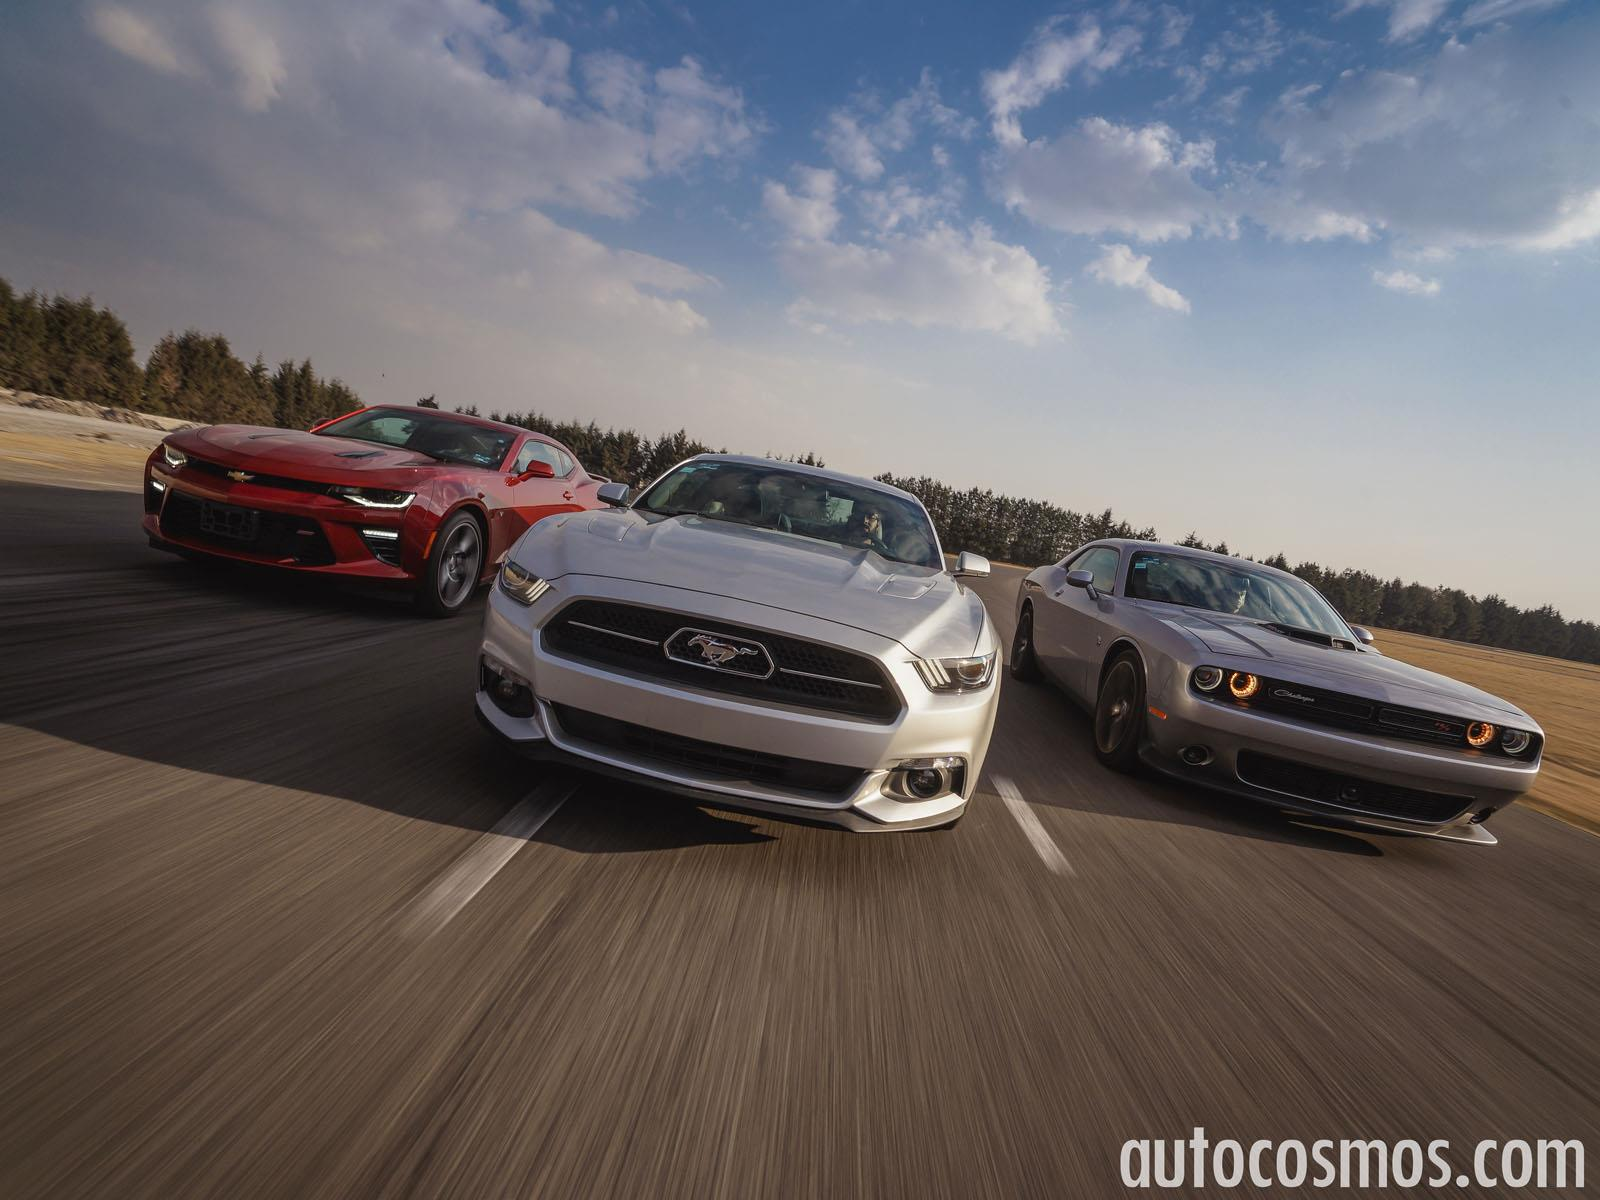 Prueba de manejo: Ford Mustang vs Chevrolet Camaro vs Dodge Challenger